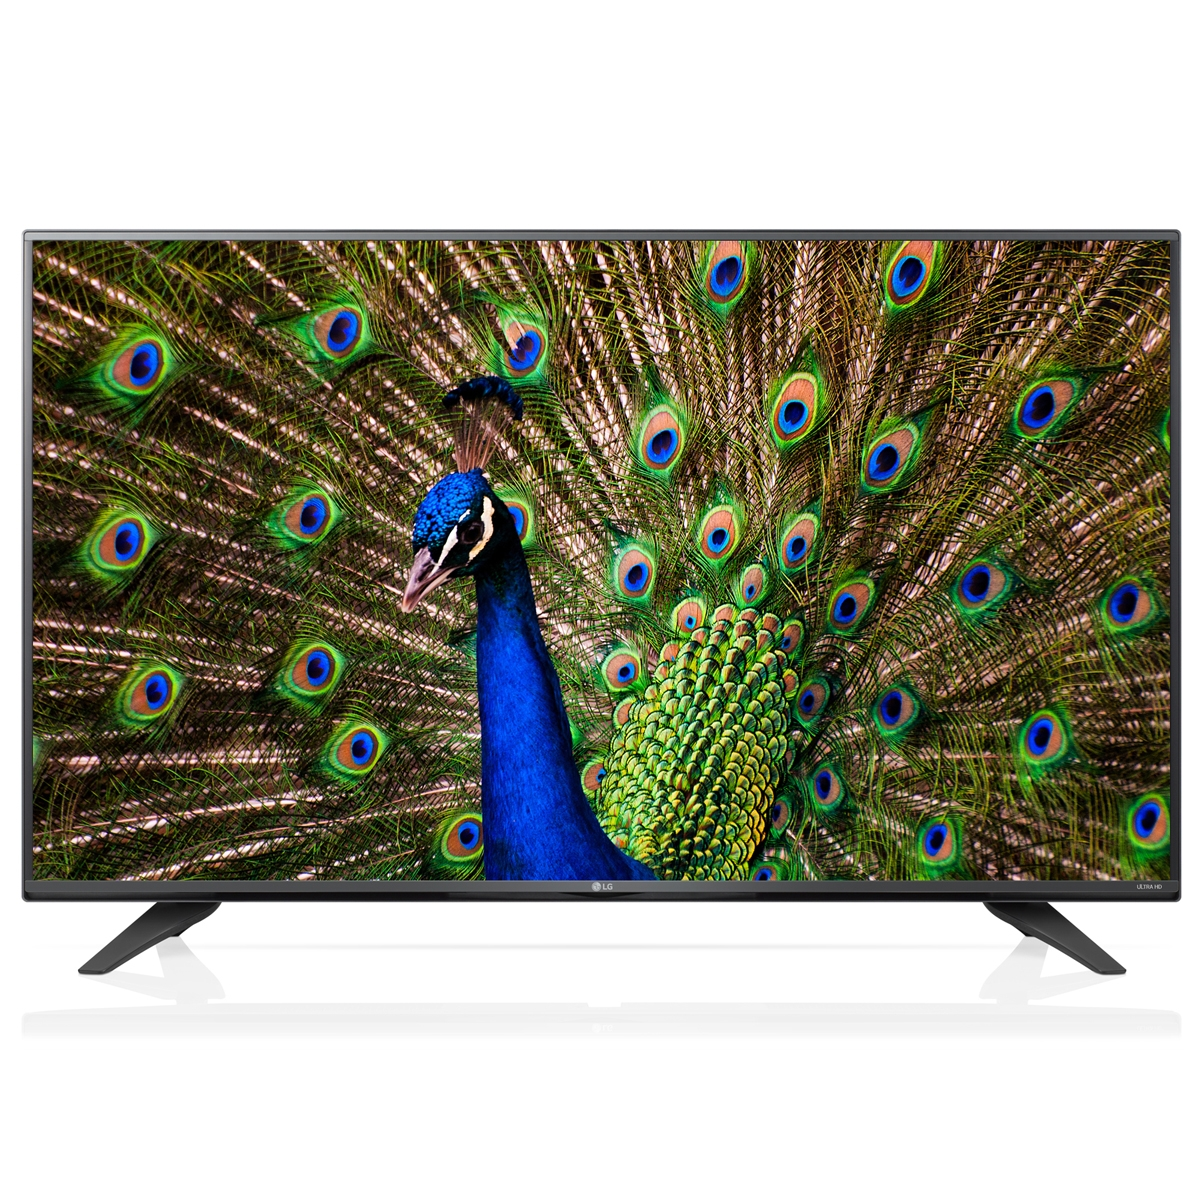 LG 65INCH CLASS UHD 4K LED SMART HDTV - 65UF7700 - RESIDENTIAL USA VERSION -LG ORIGINAL PANEL - FULL ONE YEAR MANUFACTURERS WARRANTY!